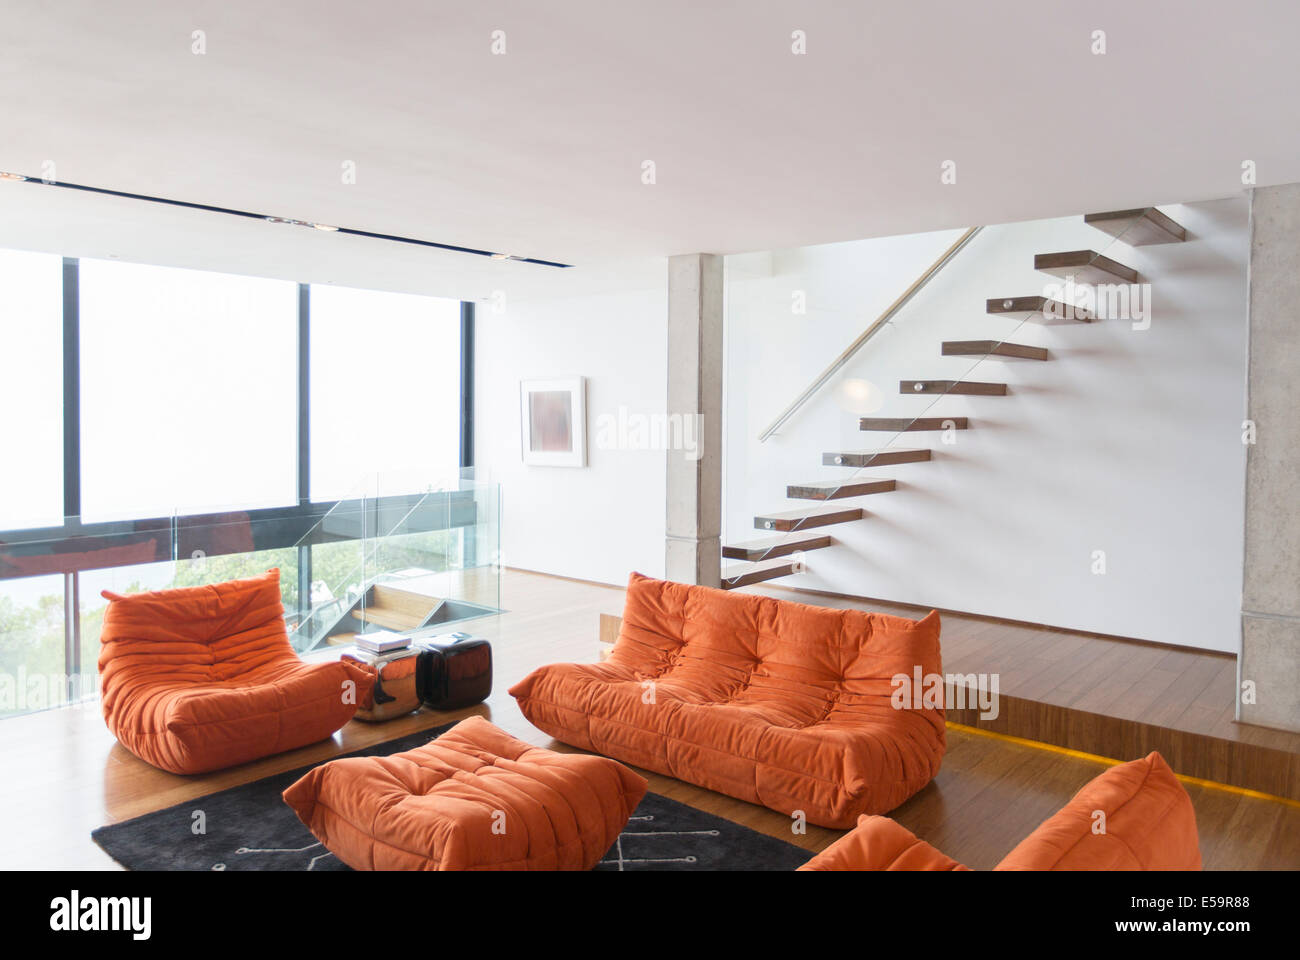 Sofas and staircase in modern living room - Stock Image